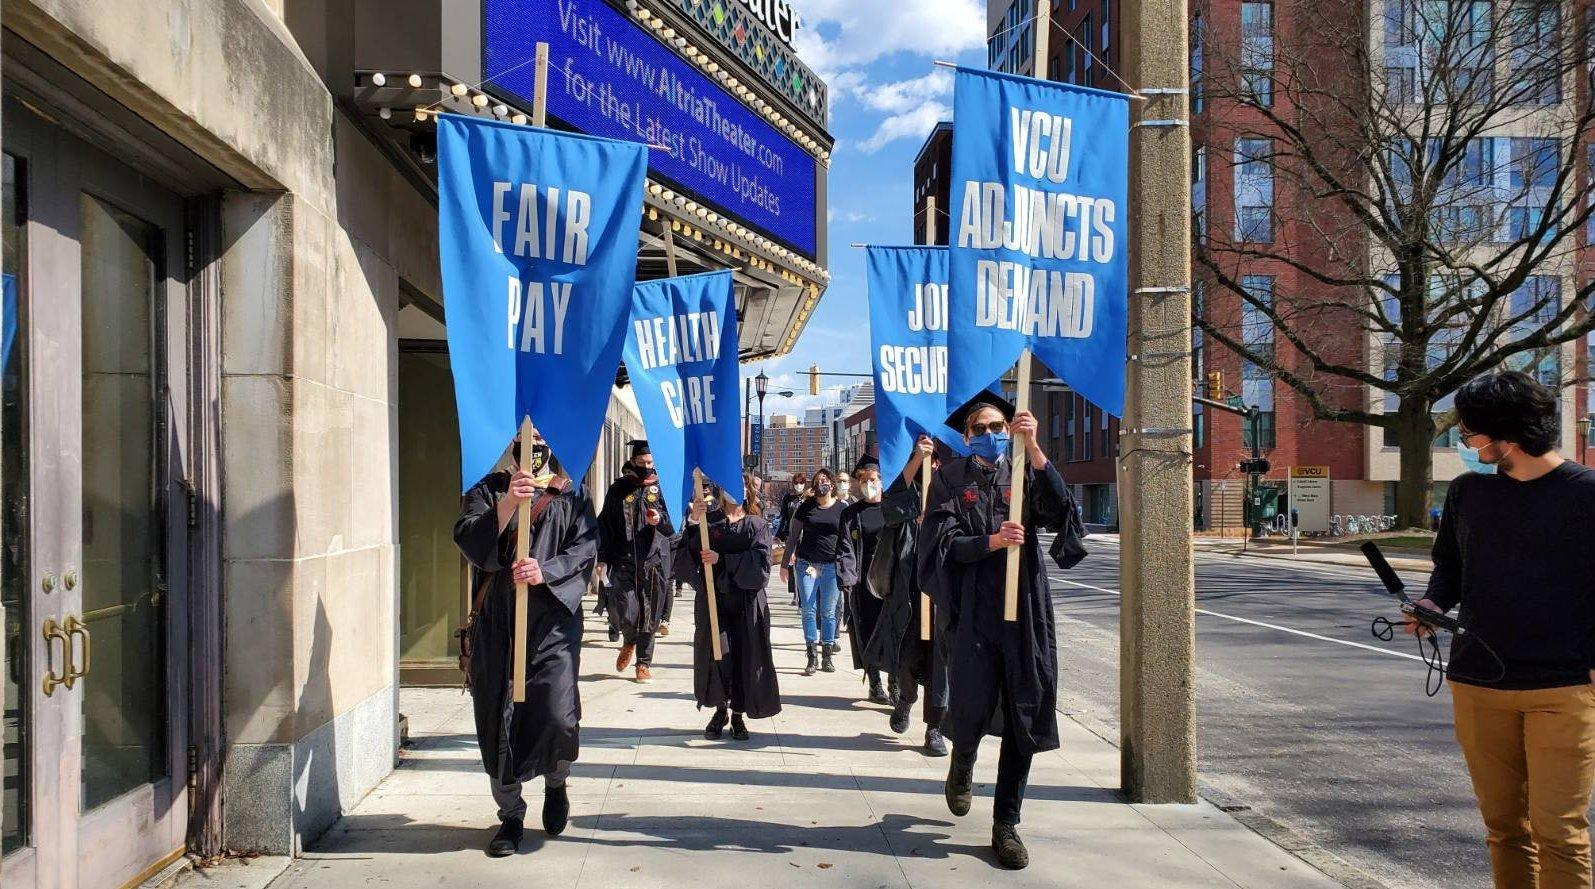 VCU adjuncts march in support of fair wages